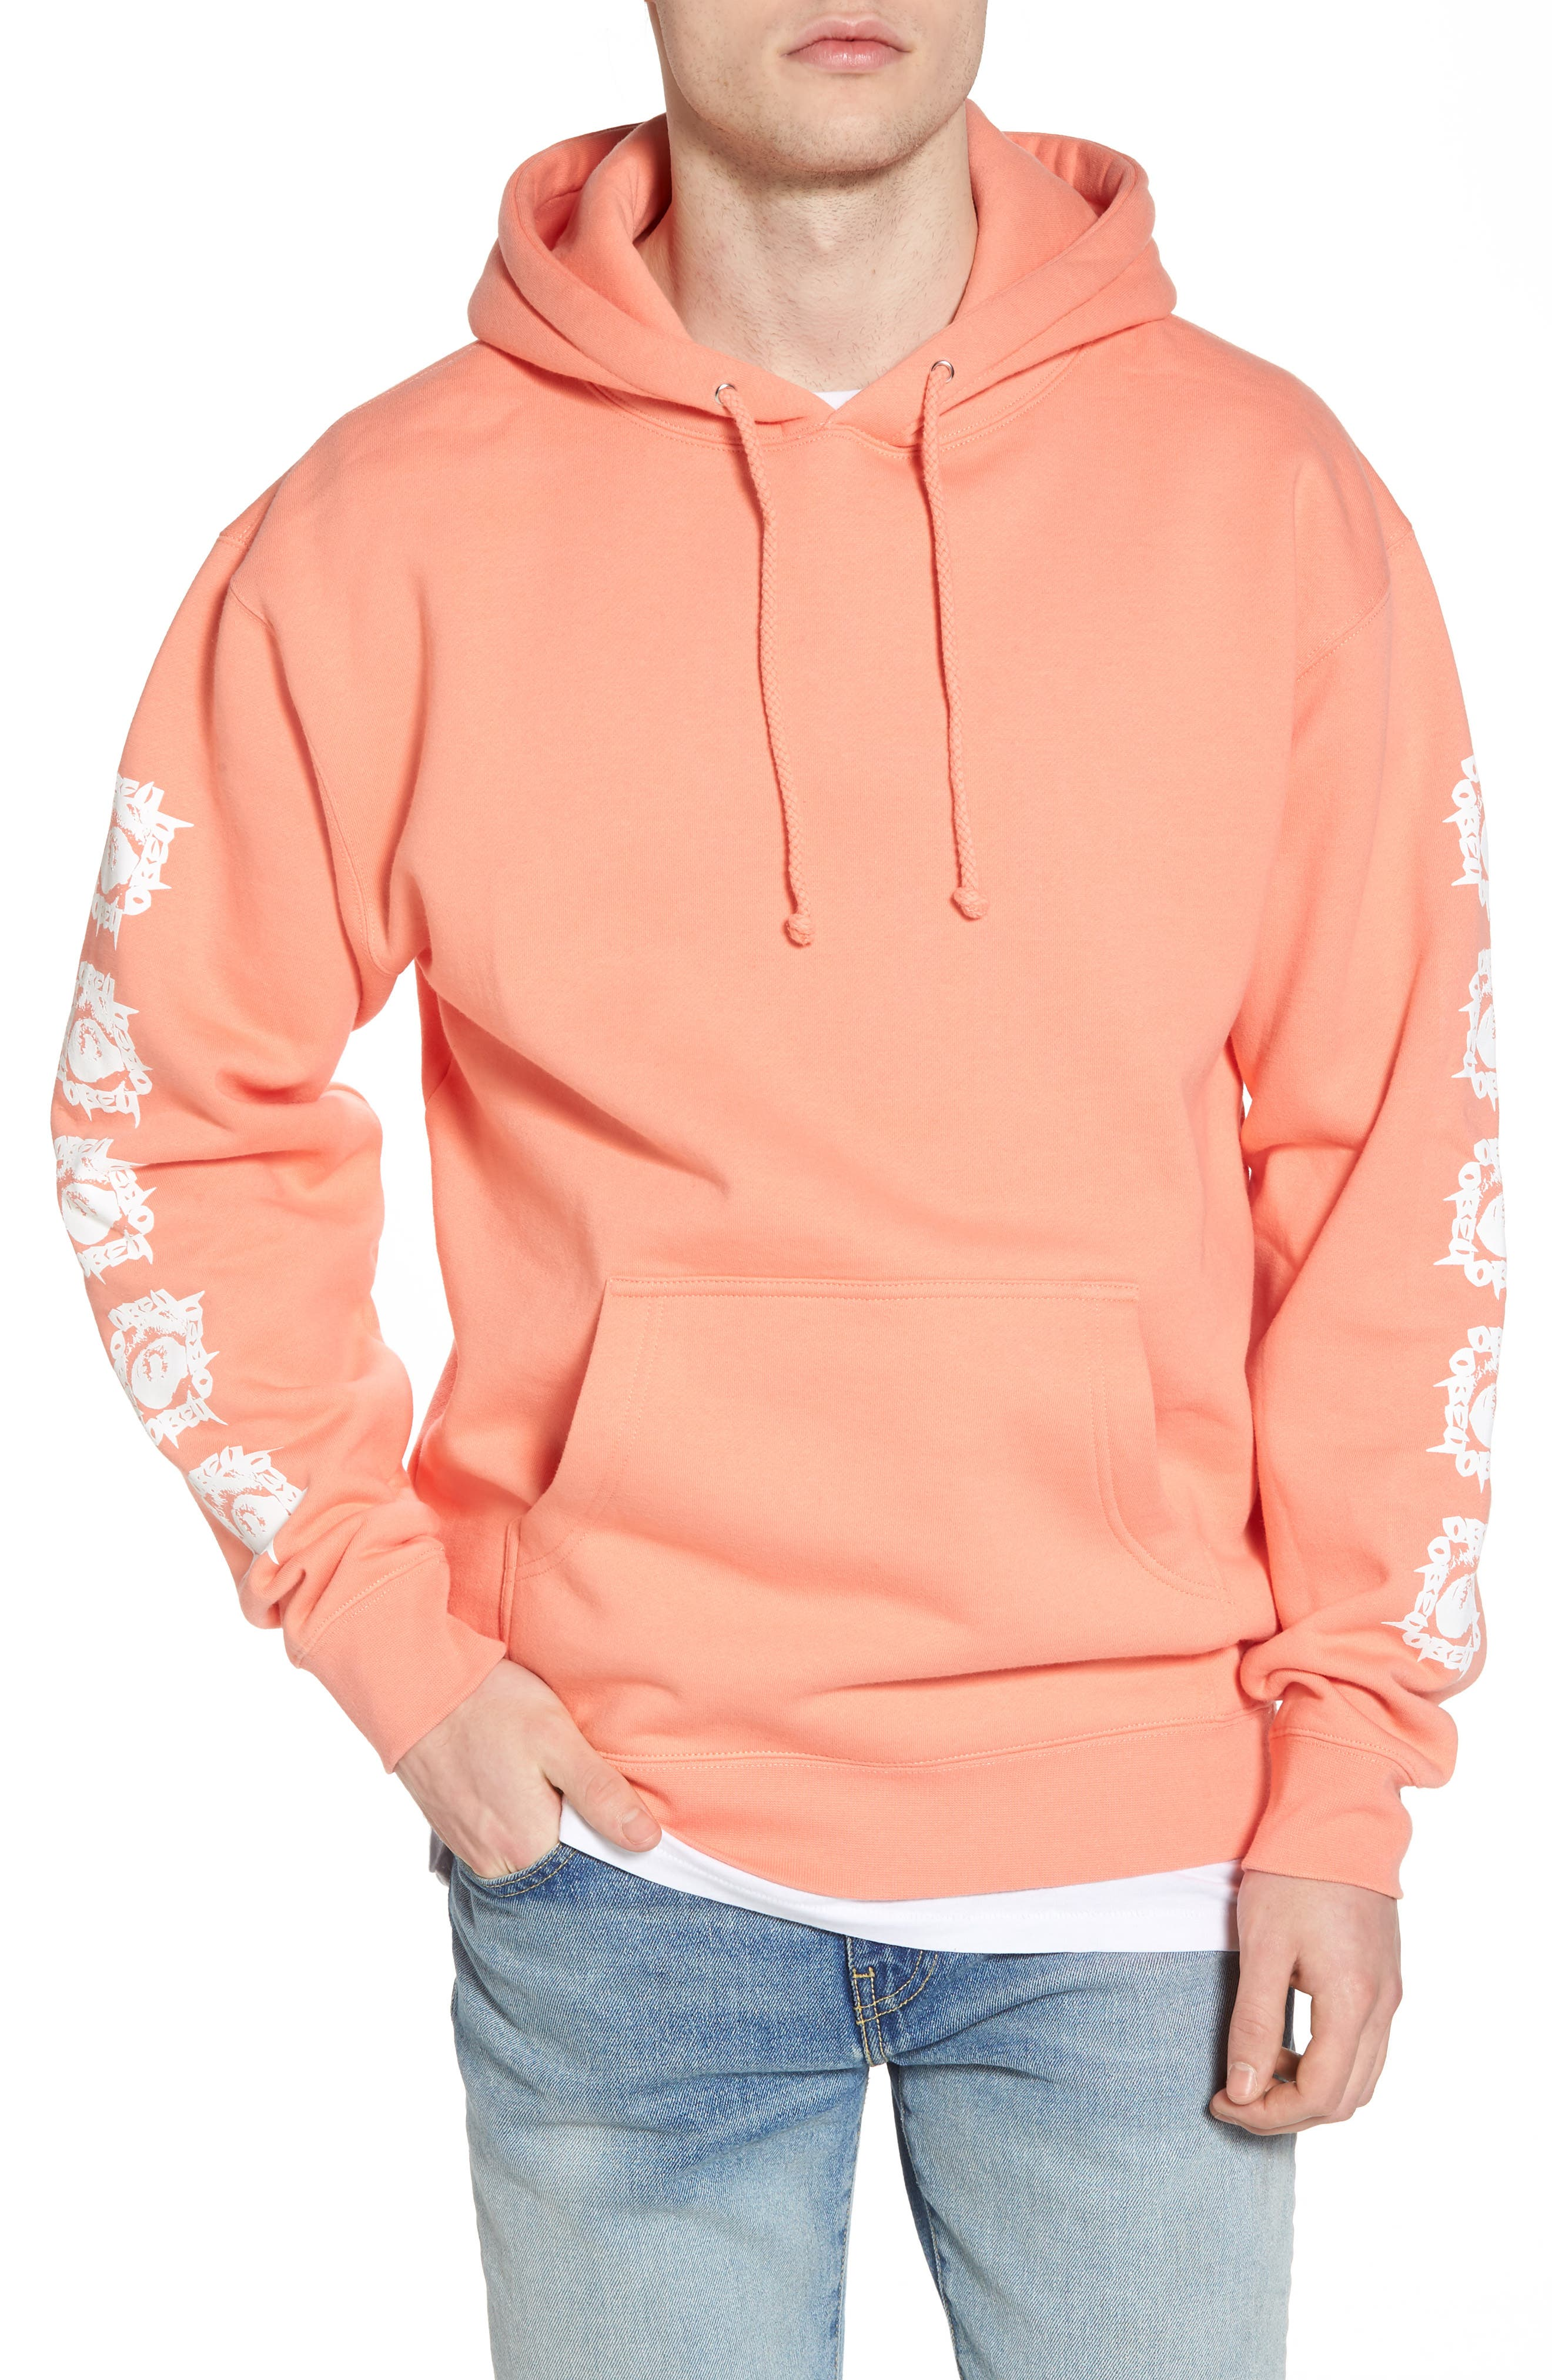 Tunnel Vision Hoodie Sweatshirt,                         Main,                         color, Coral